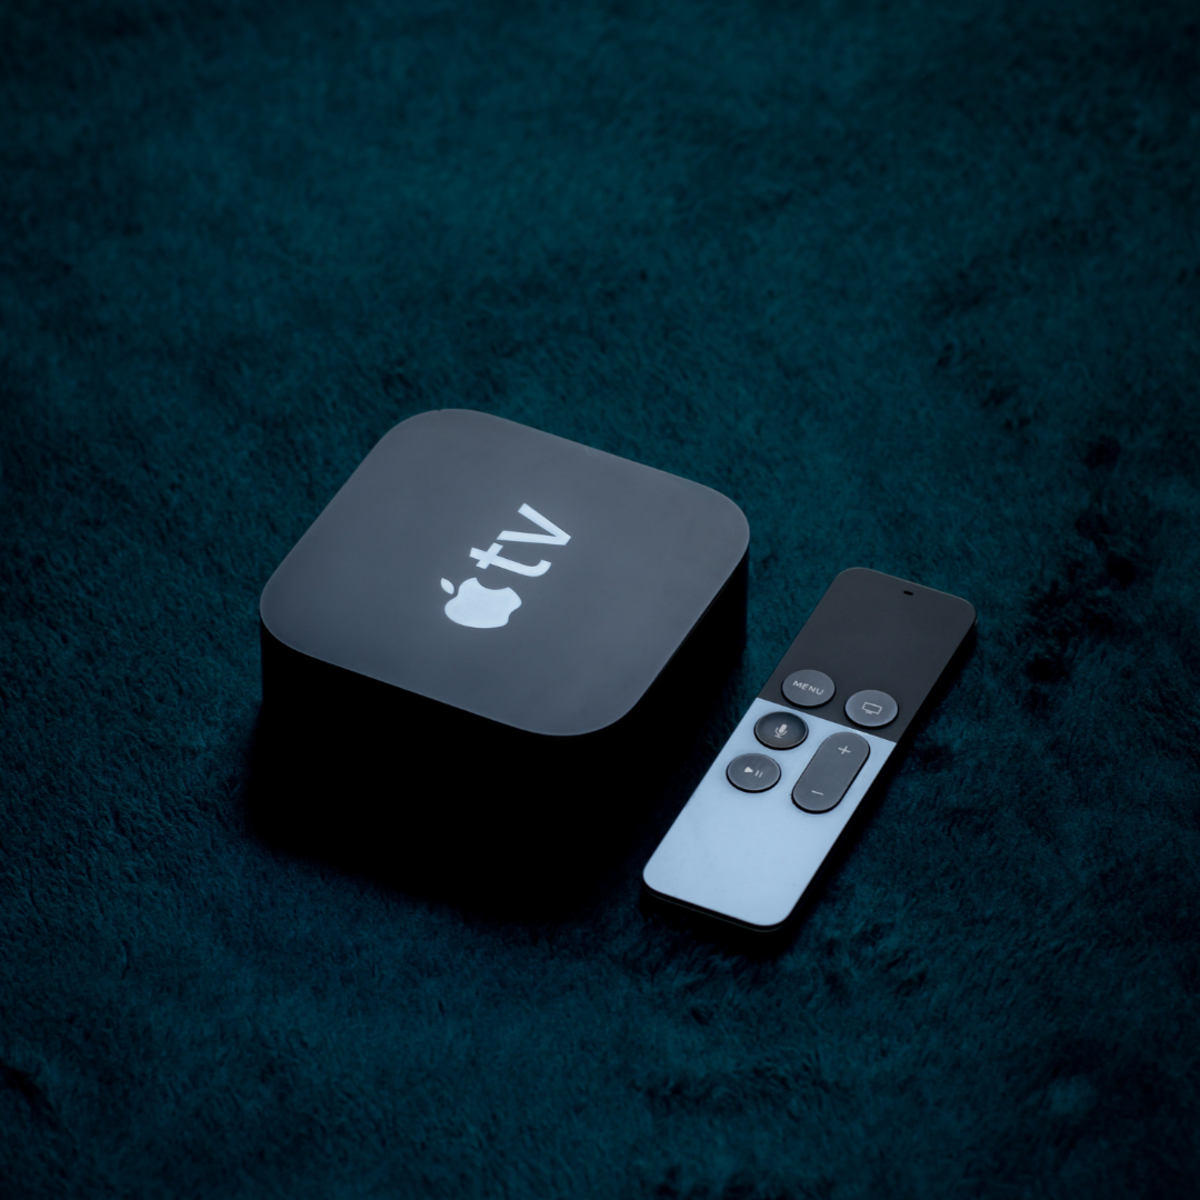 Apple TV box with remote.